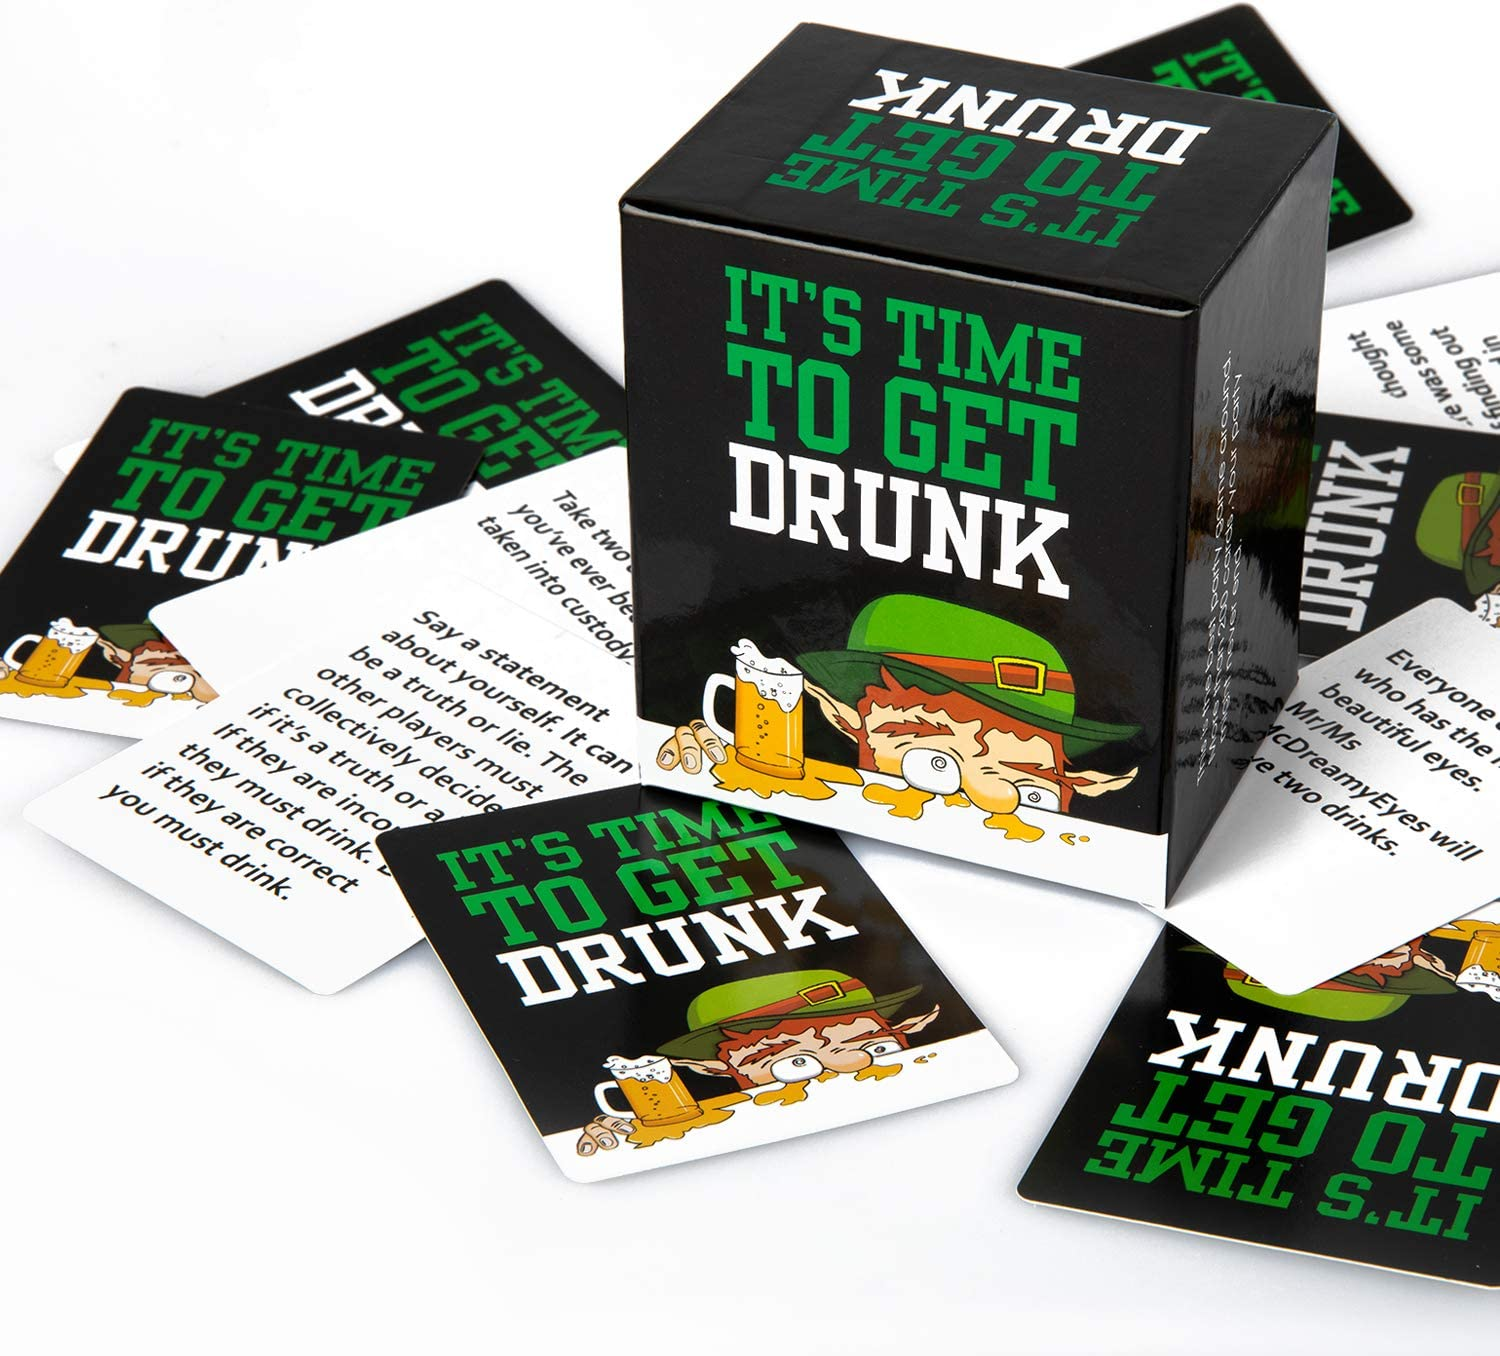 IT'S TIME TO GET DRUNK-Party Card Game To Play With Friends/Family, Games Night at Party, College, Camping, Dinner- FUN Adult Party Drinking Game for Men & Women